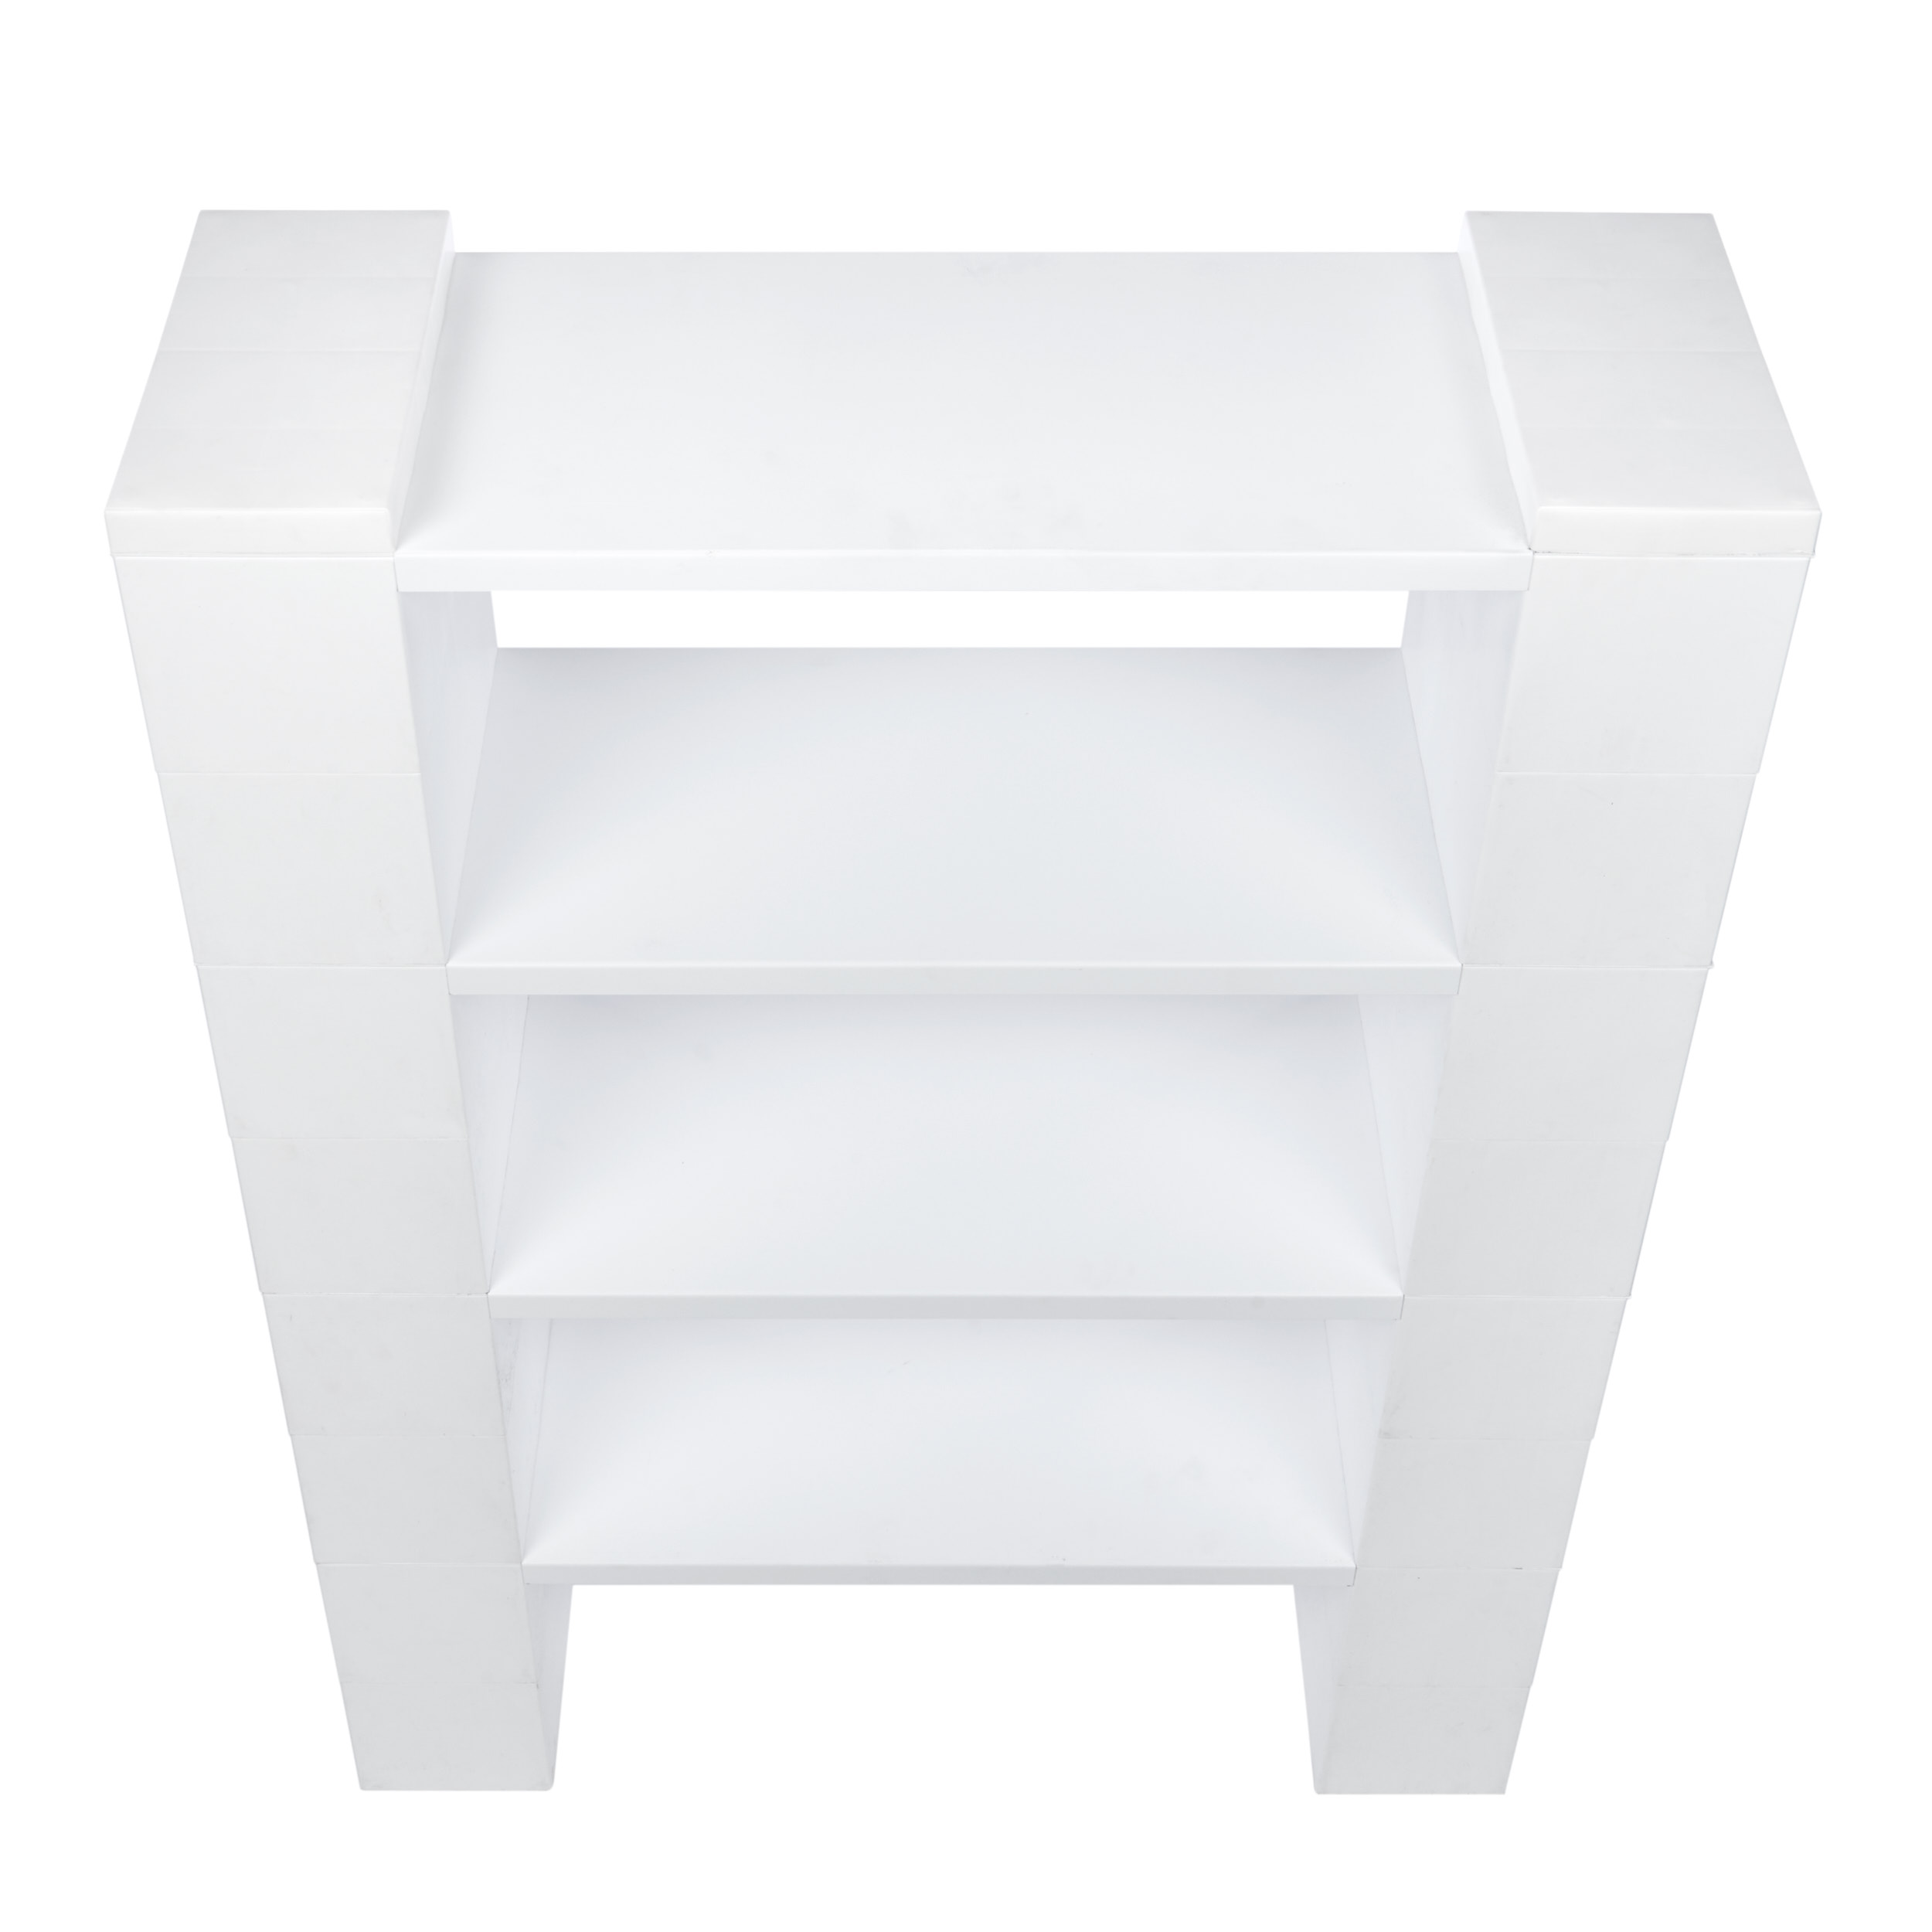 "4 Level, 36""W EverBlock Shelving Kit"